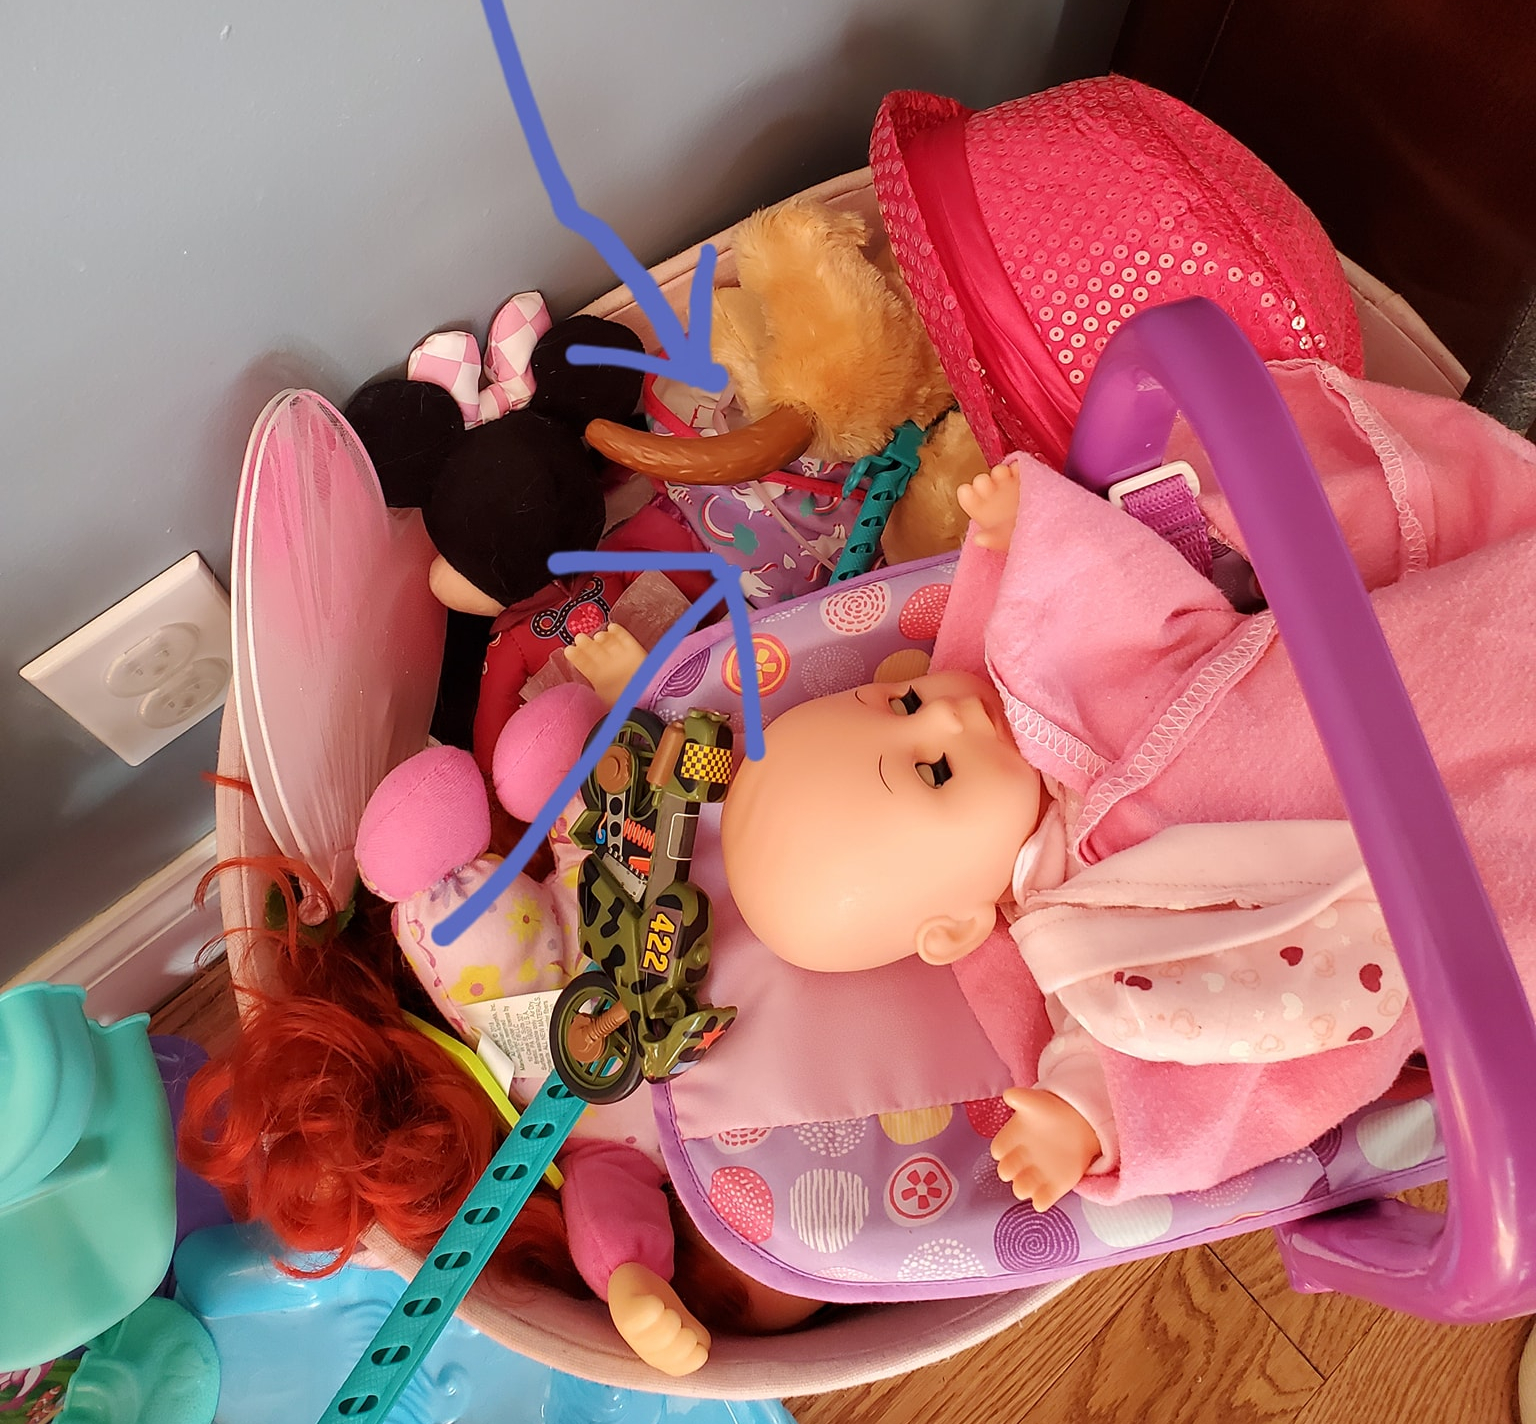 photo of a bin of children's toys same as the previous photo, but with purple arrows pointing to the pink glasses